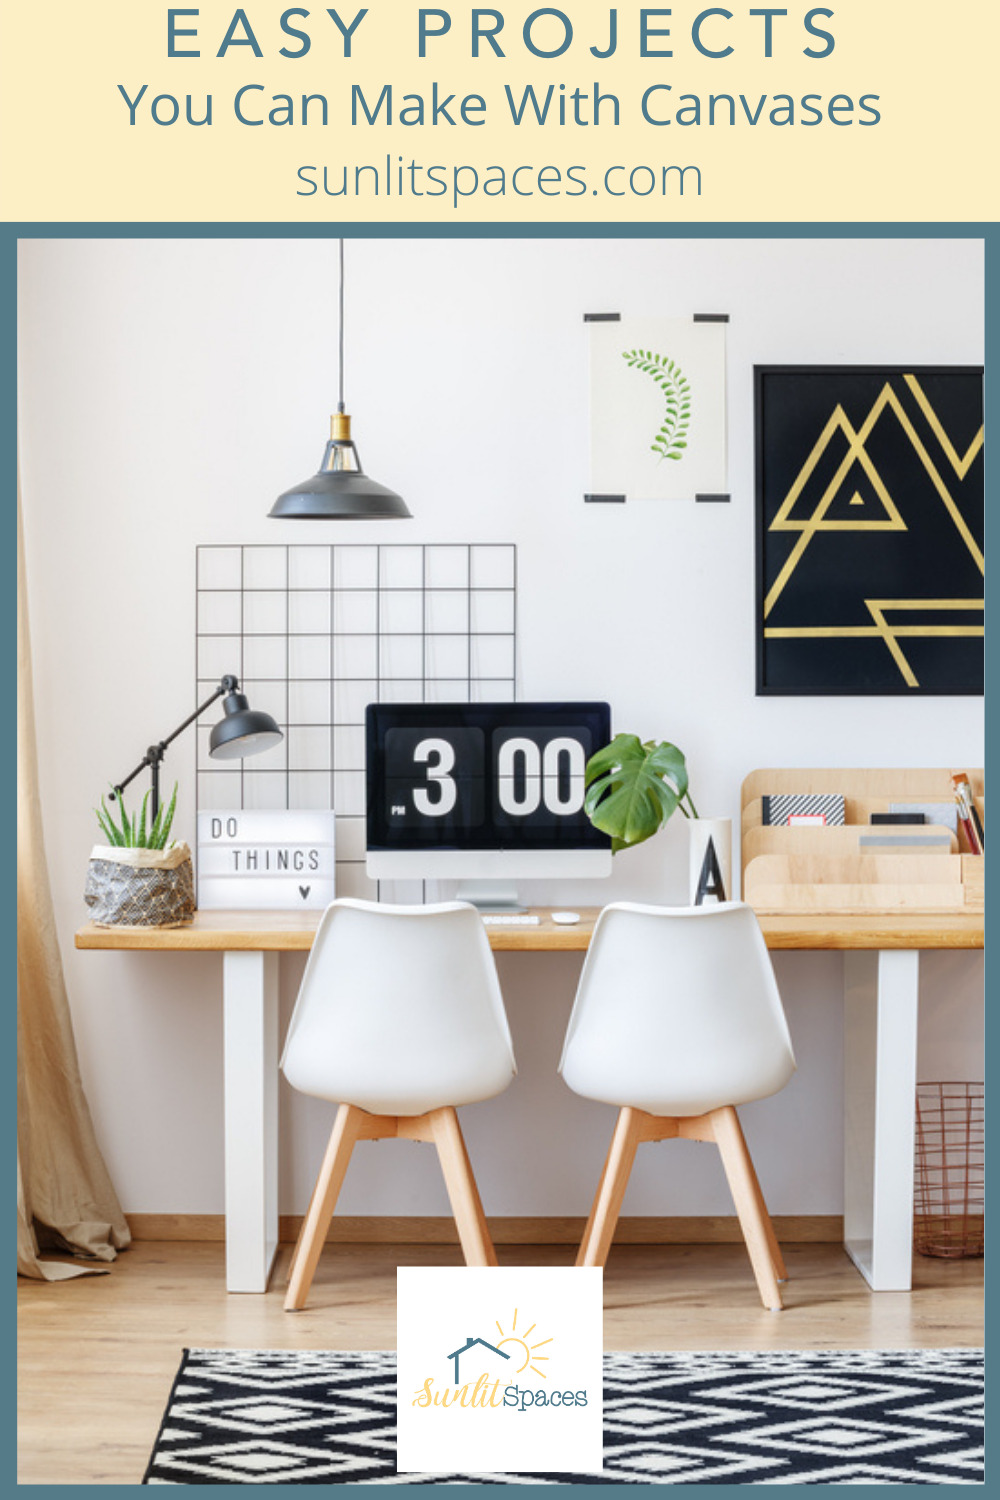 Sunlitspaces.com is the best place to find out how you can spruce up your home! Find tons of DIYs and inspo for any home project. Add some flair to your decor with these easy-to-make canvas projects!